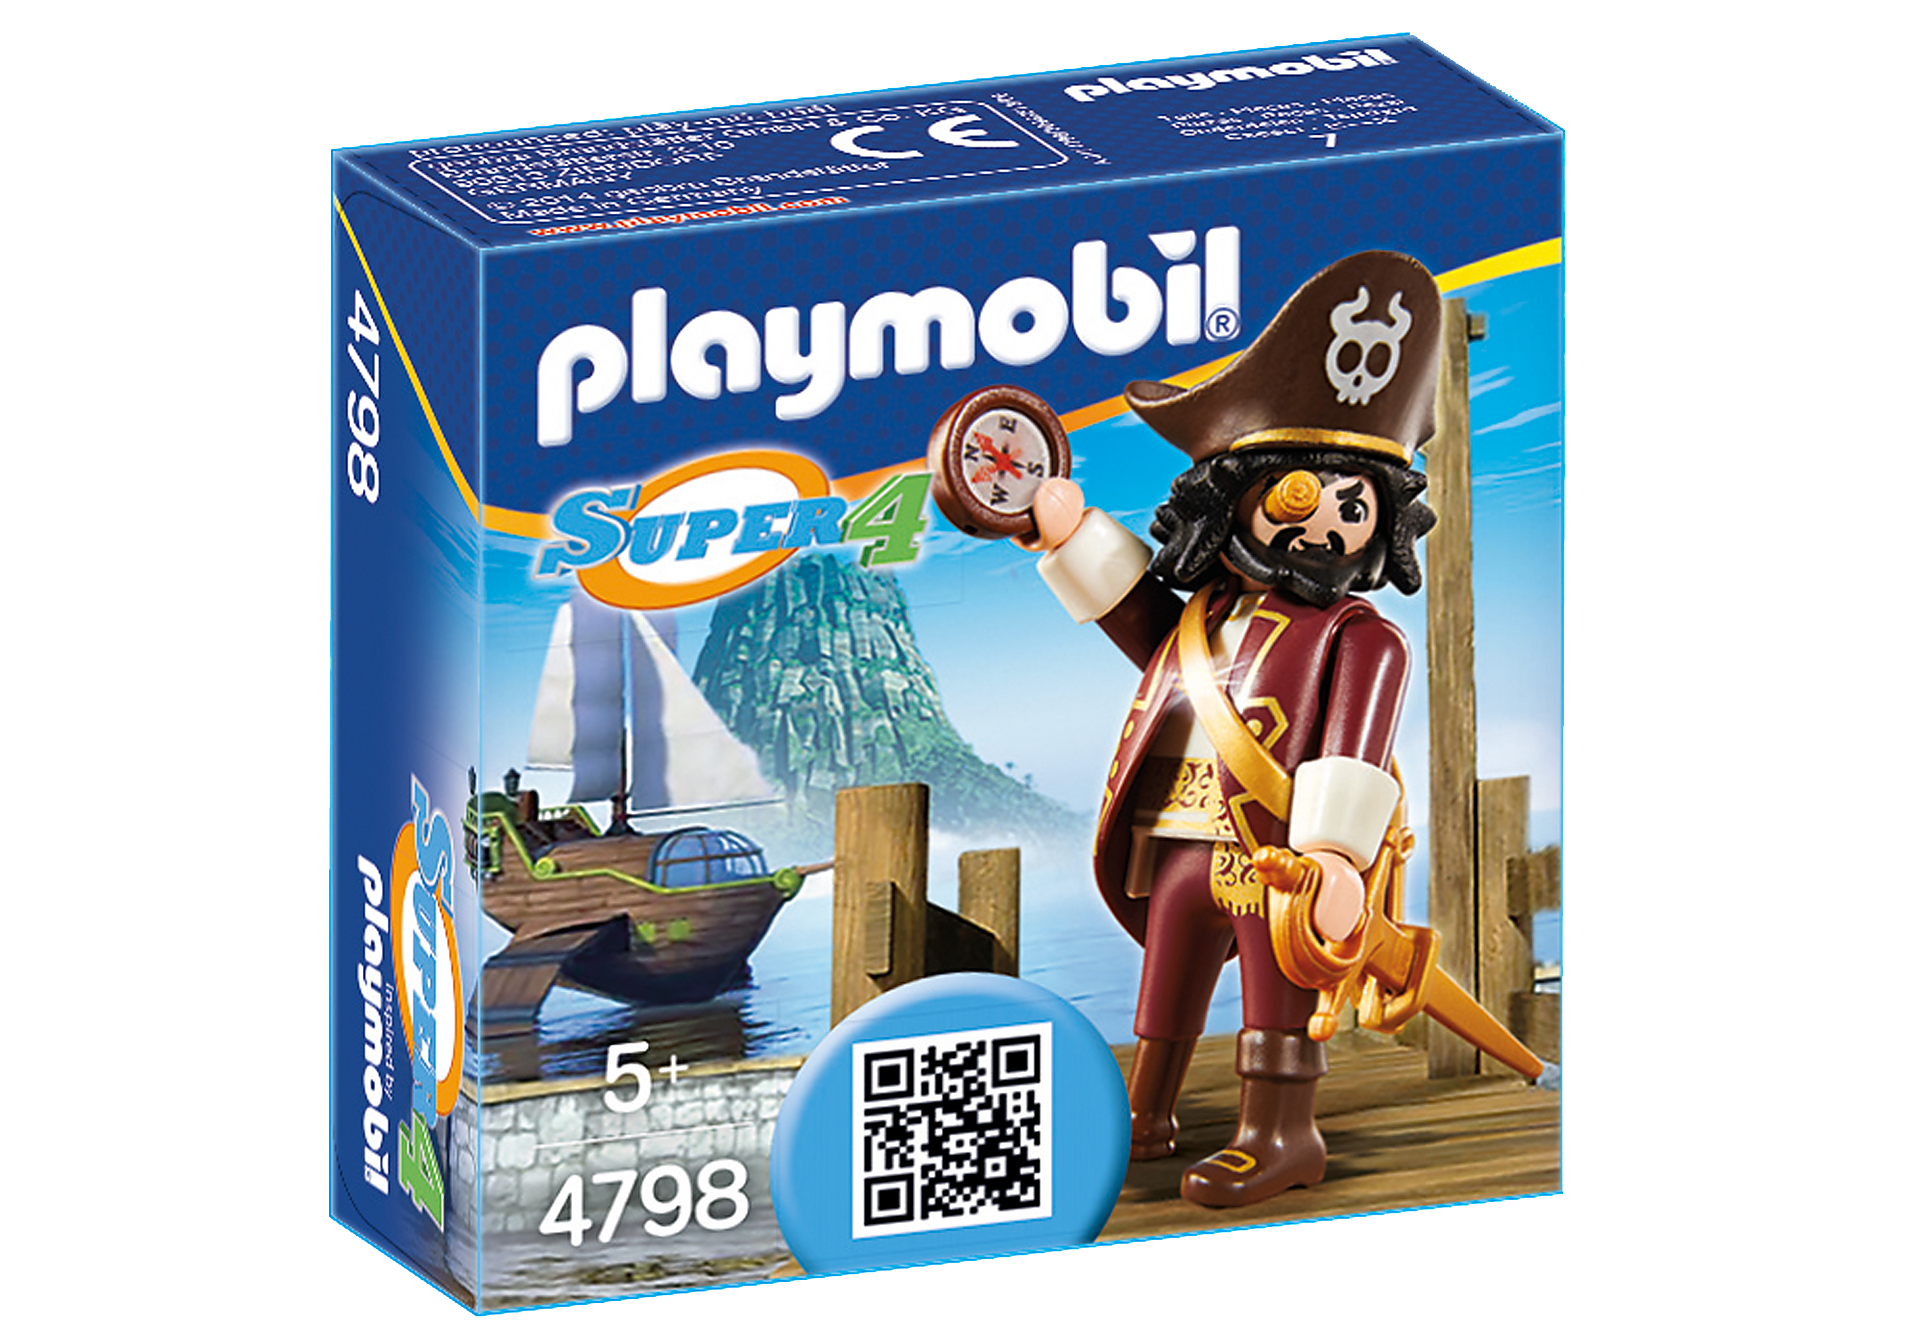 http://media.playmobil.com/i/playmobil/4798_product_box_front/Sharkbeard